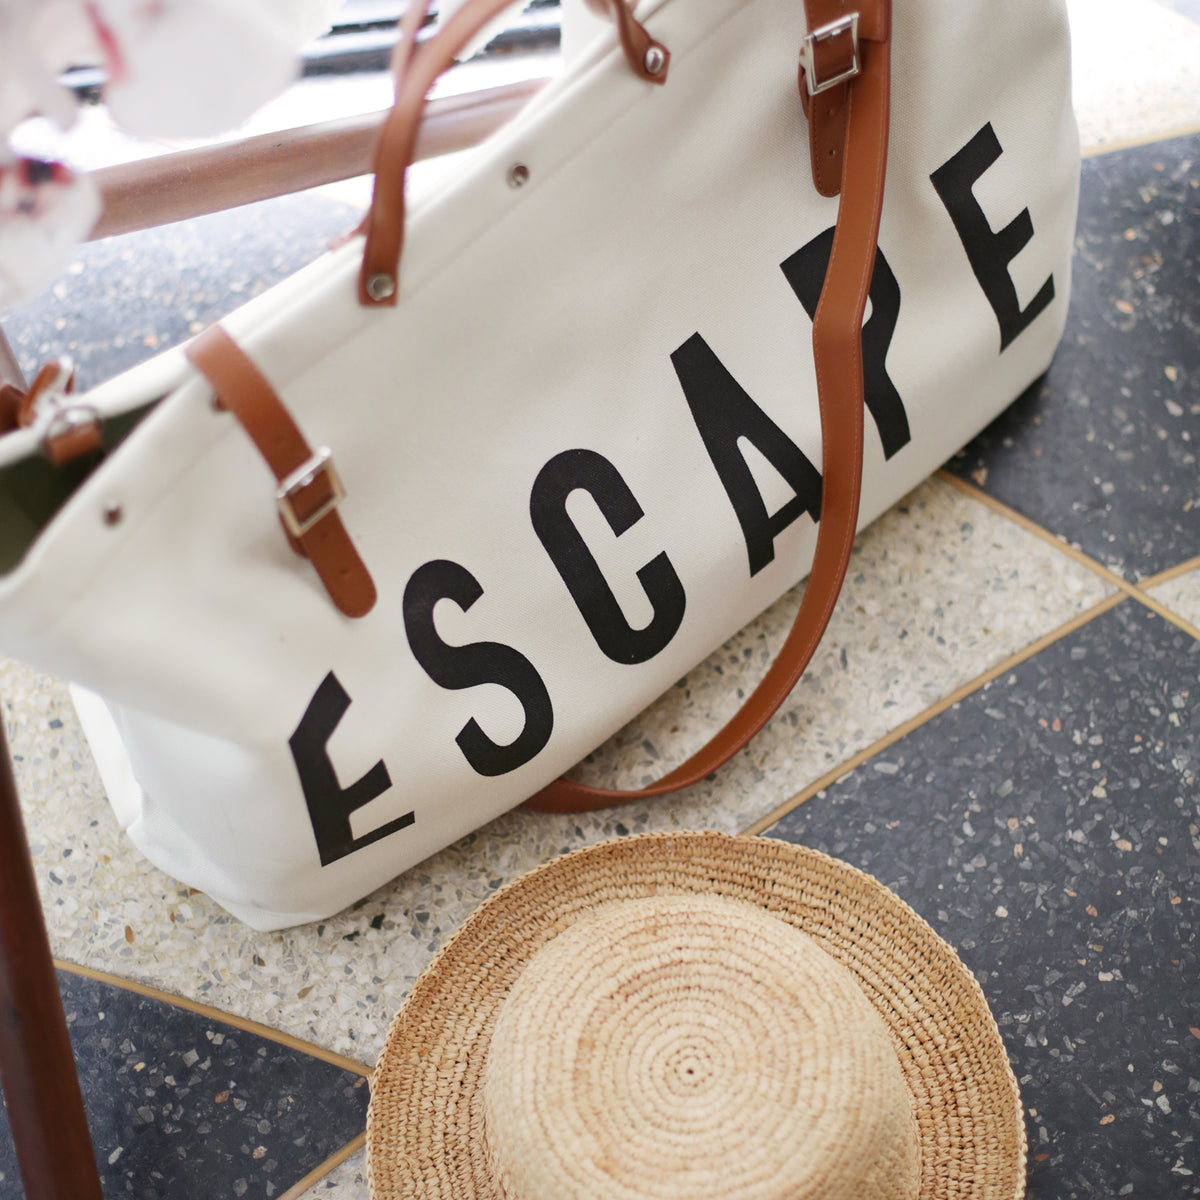 Escape Carry-all Tote Bag